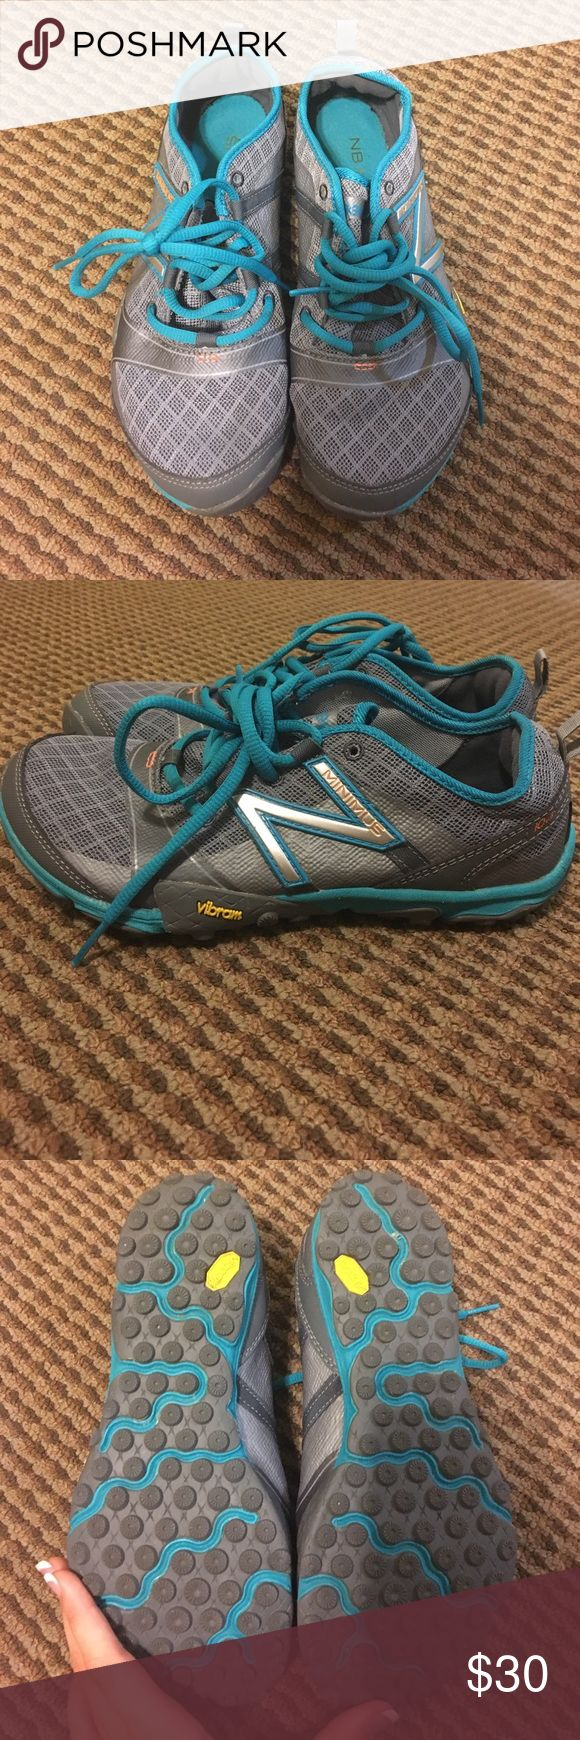 New balance hiking shoes worn once, in great condition! New Balance Shoes Athletic Shoes